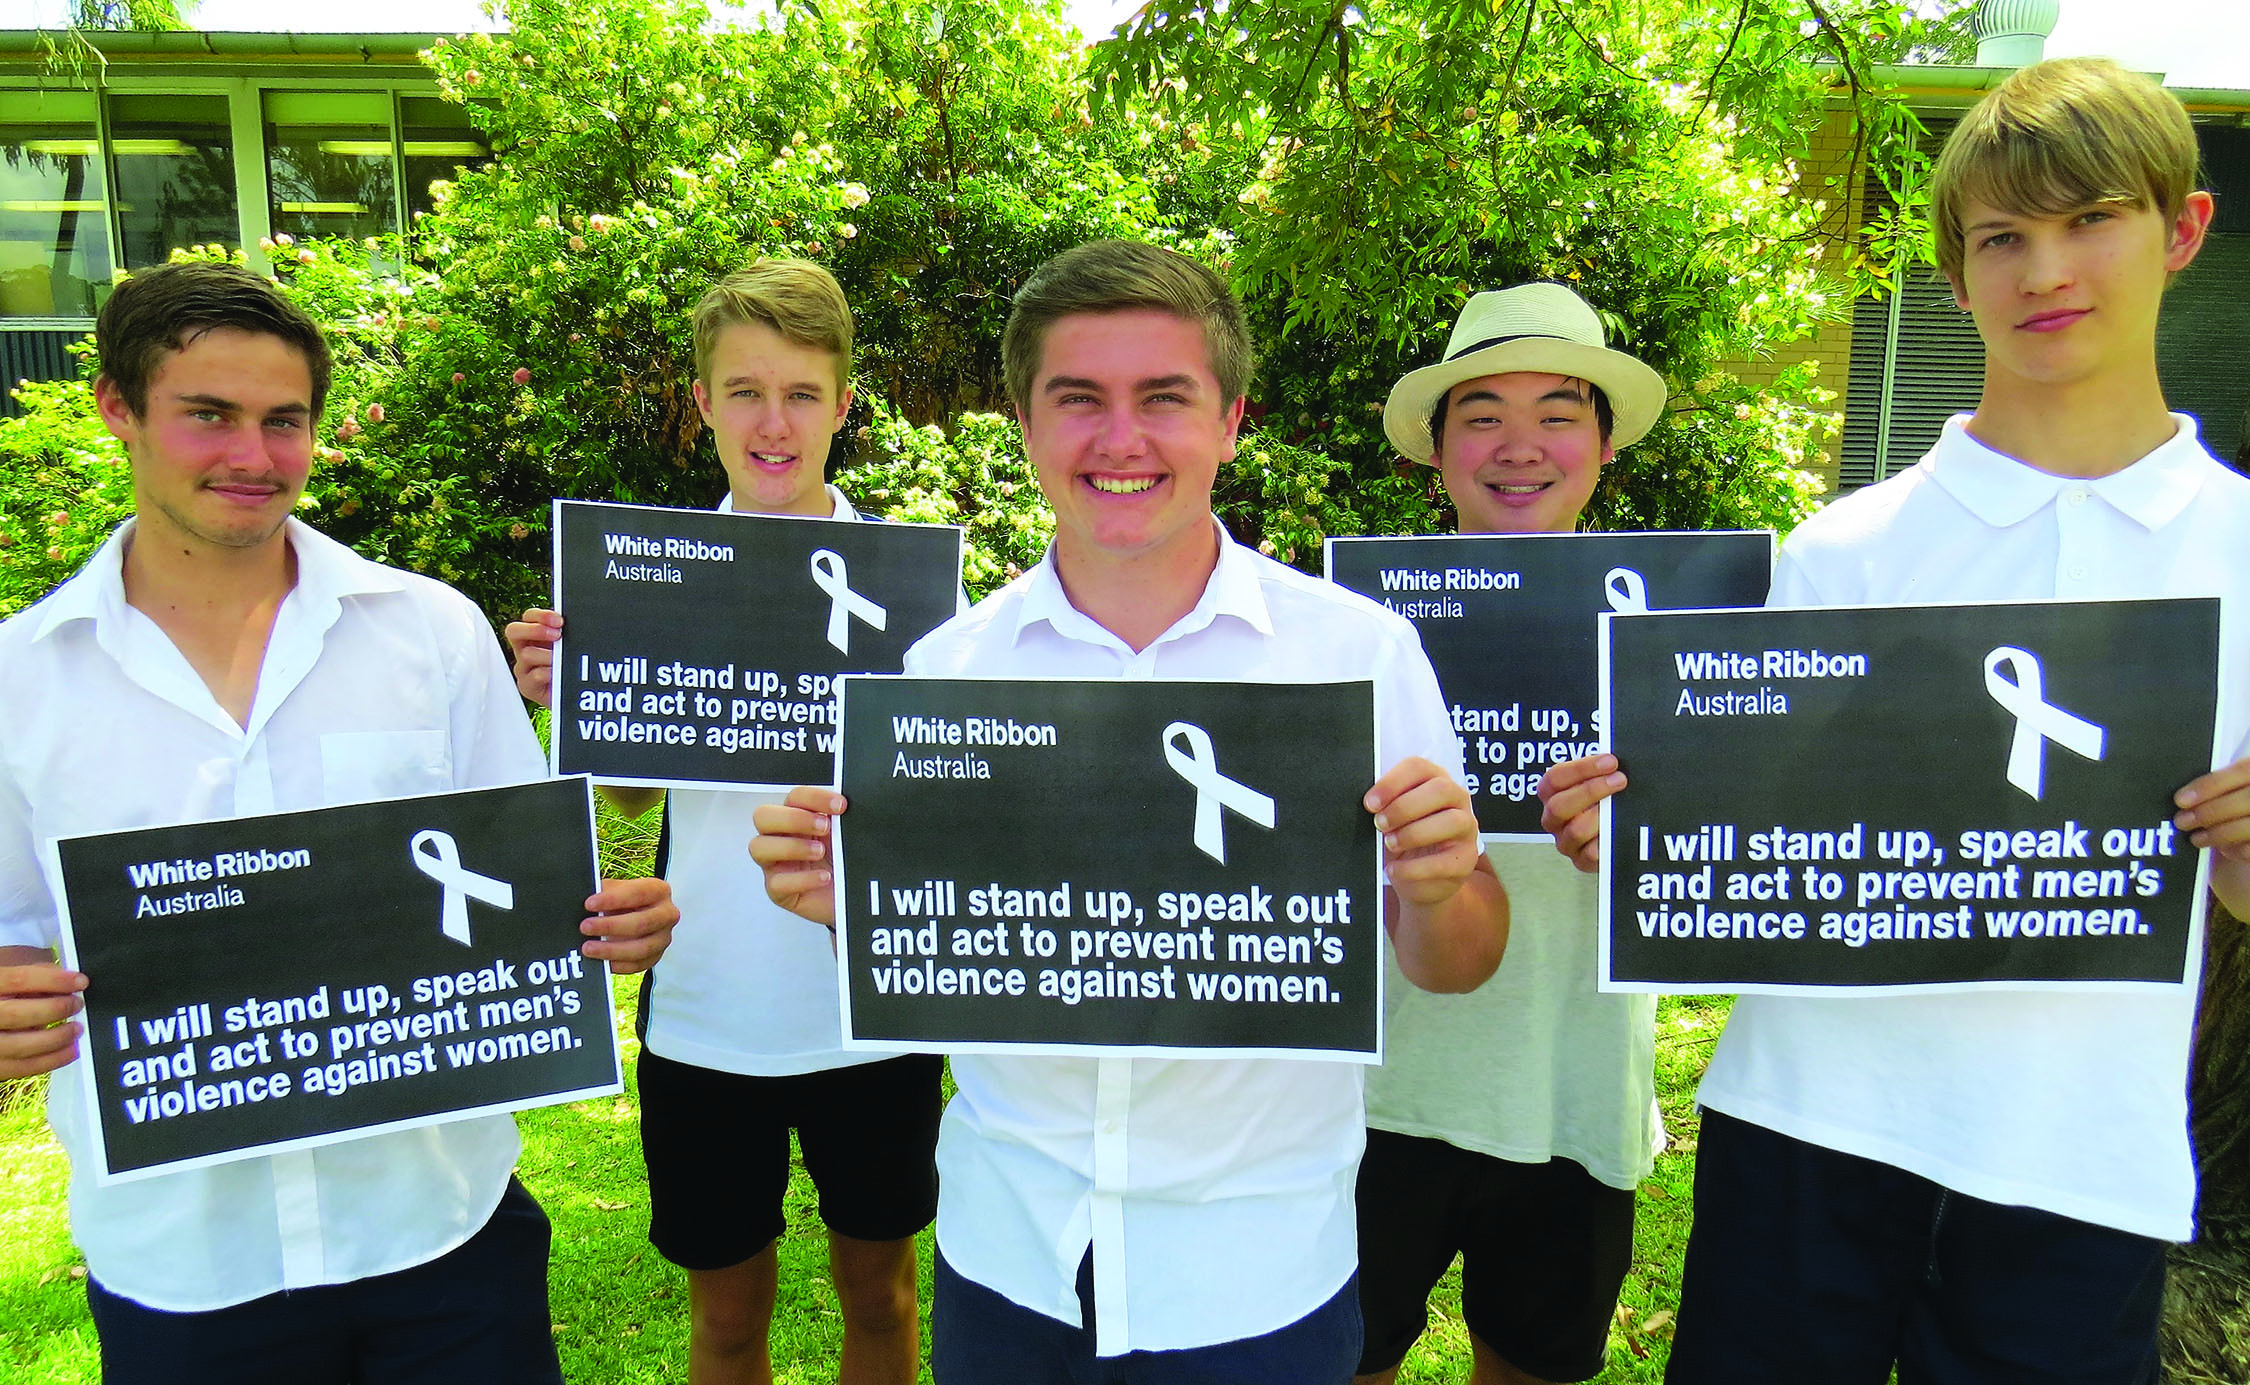 White Ribbon day - take the oath